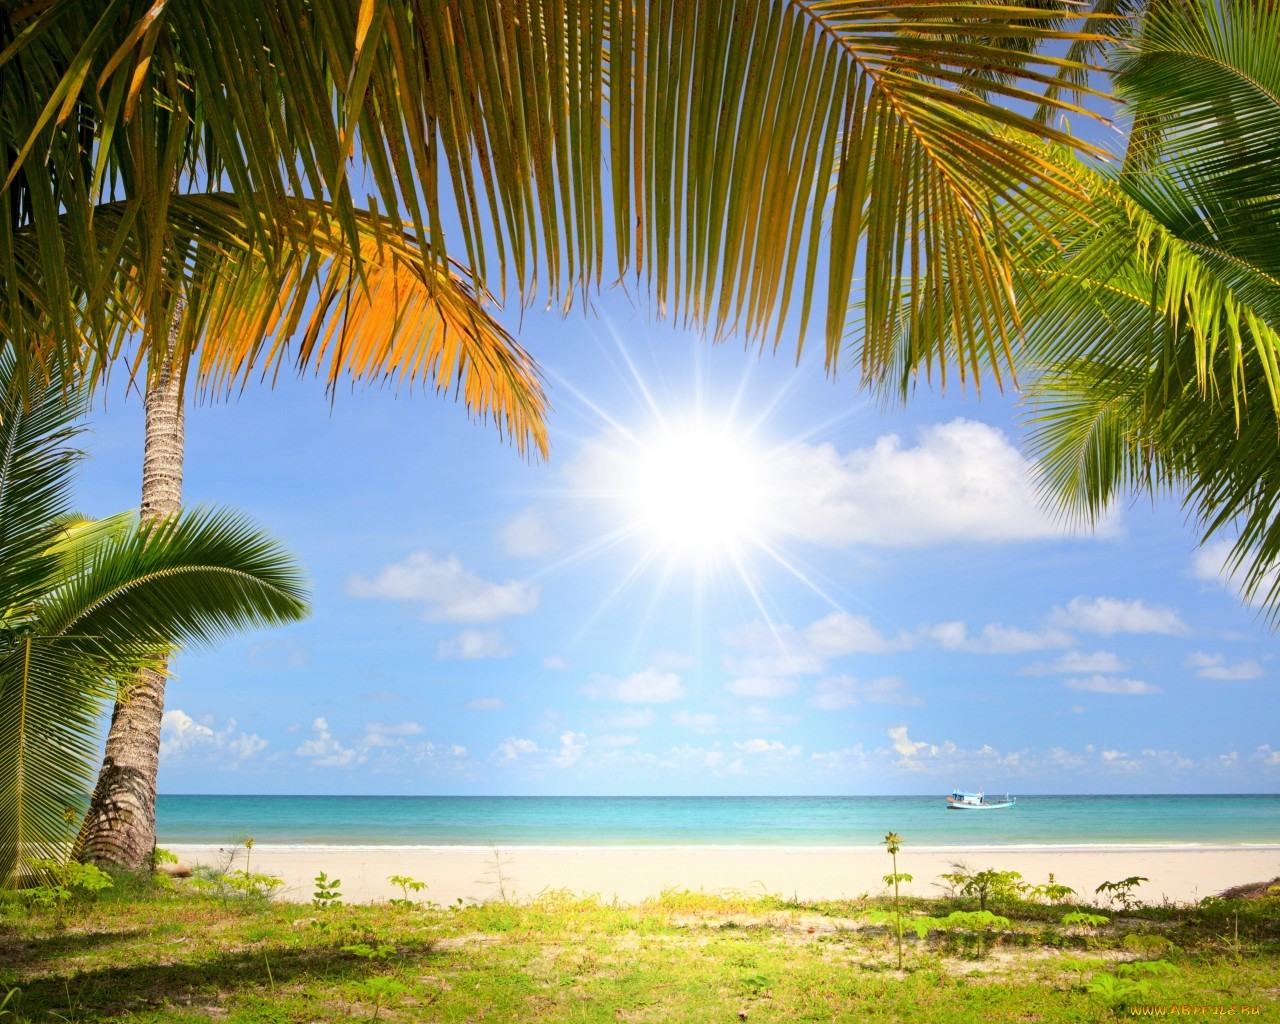 19923 download wallpaper Landscape, Sky, Sea, Clouds, Beach, Palms screensavers and pictures for free